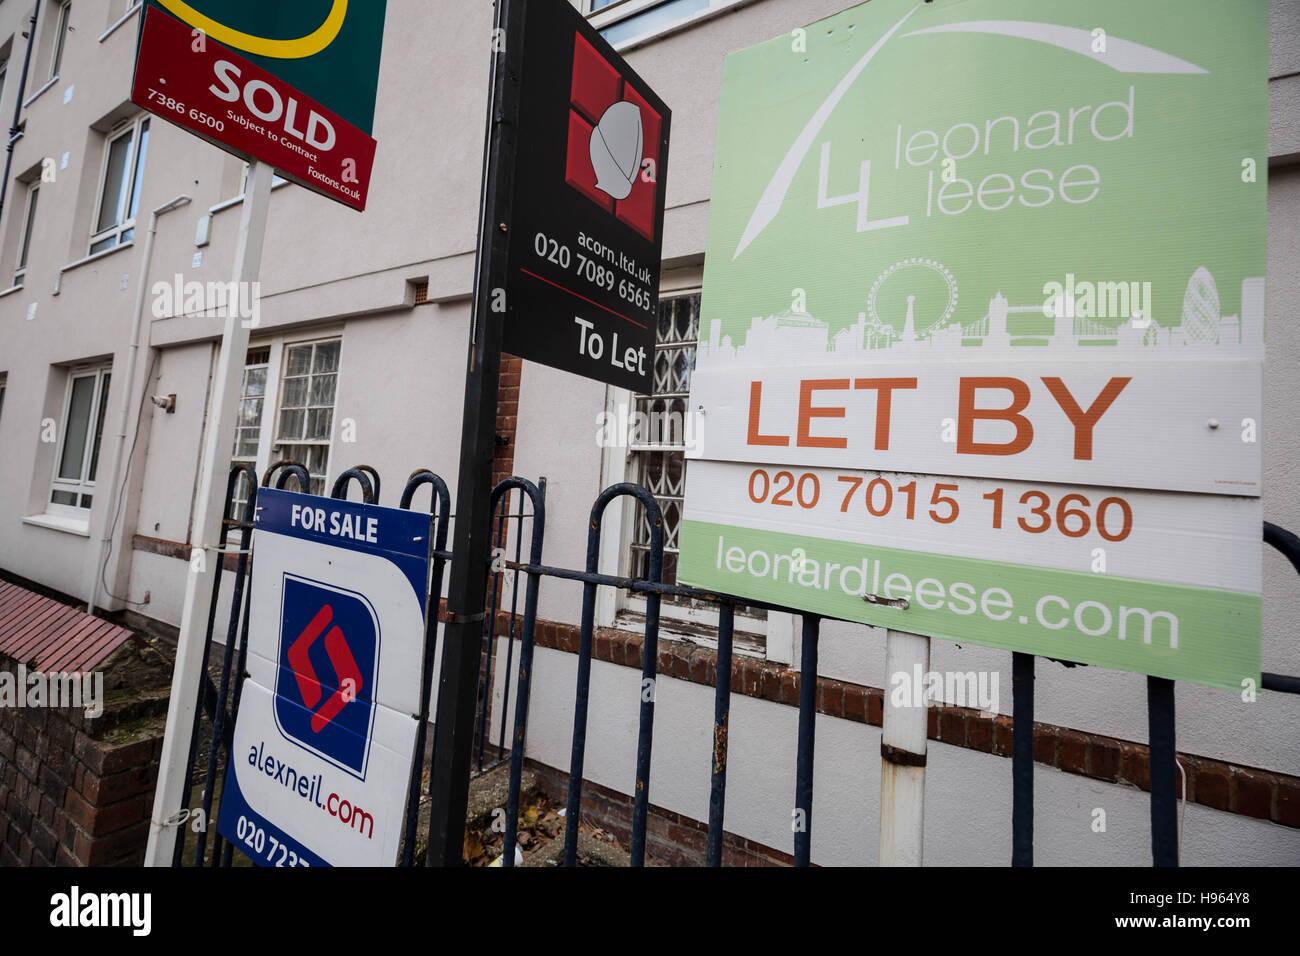 Estate agents boards advertising property sale or rental in London, UK. Stock Photo